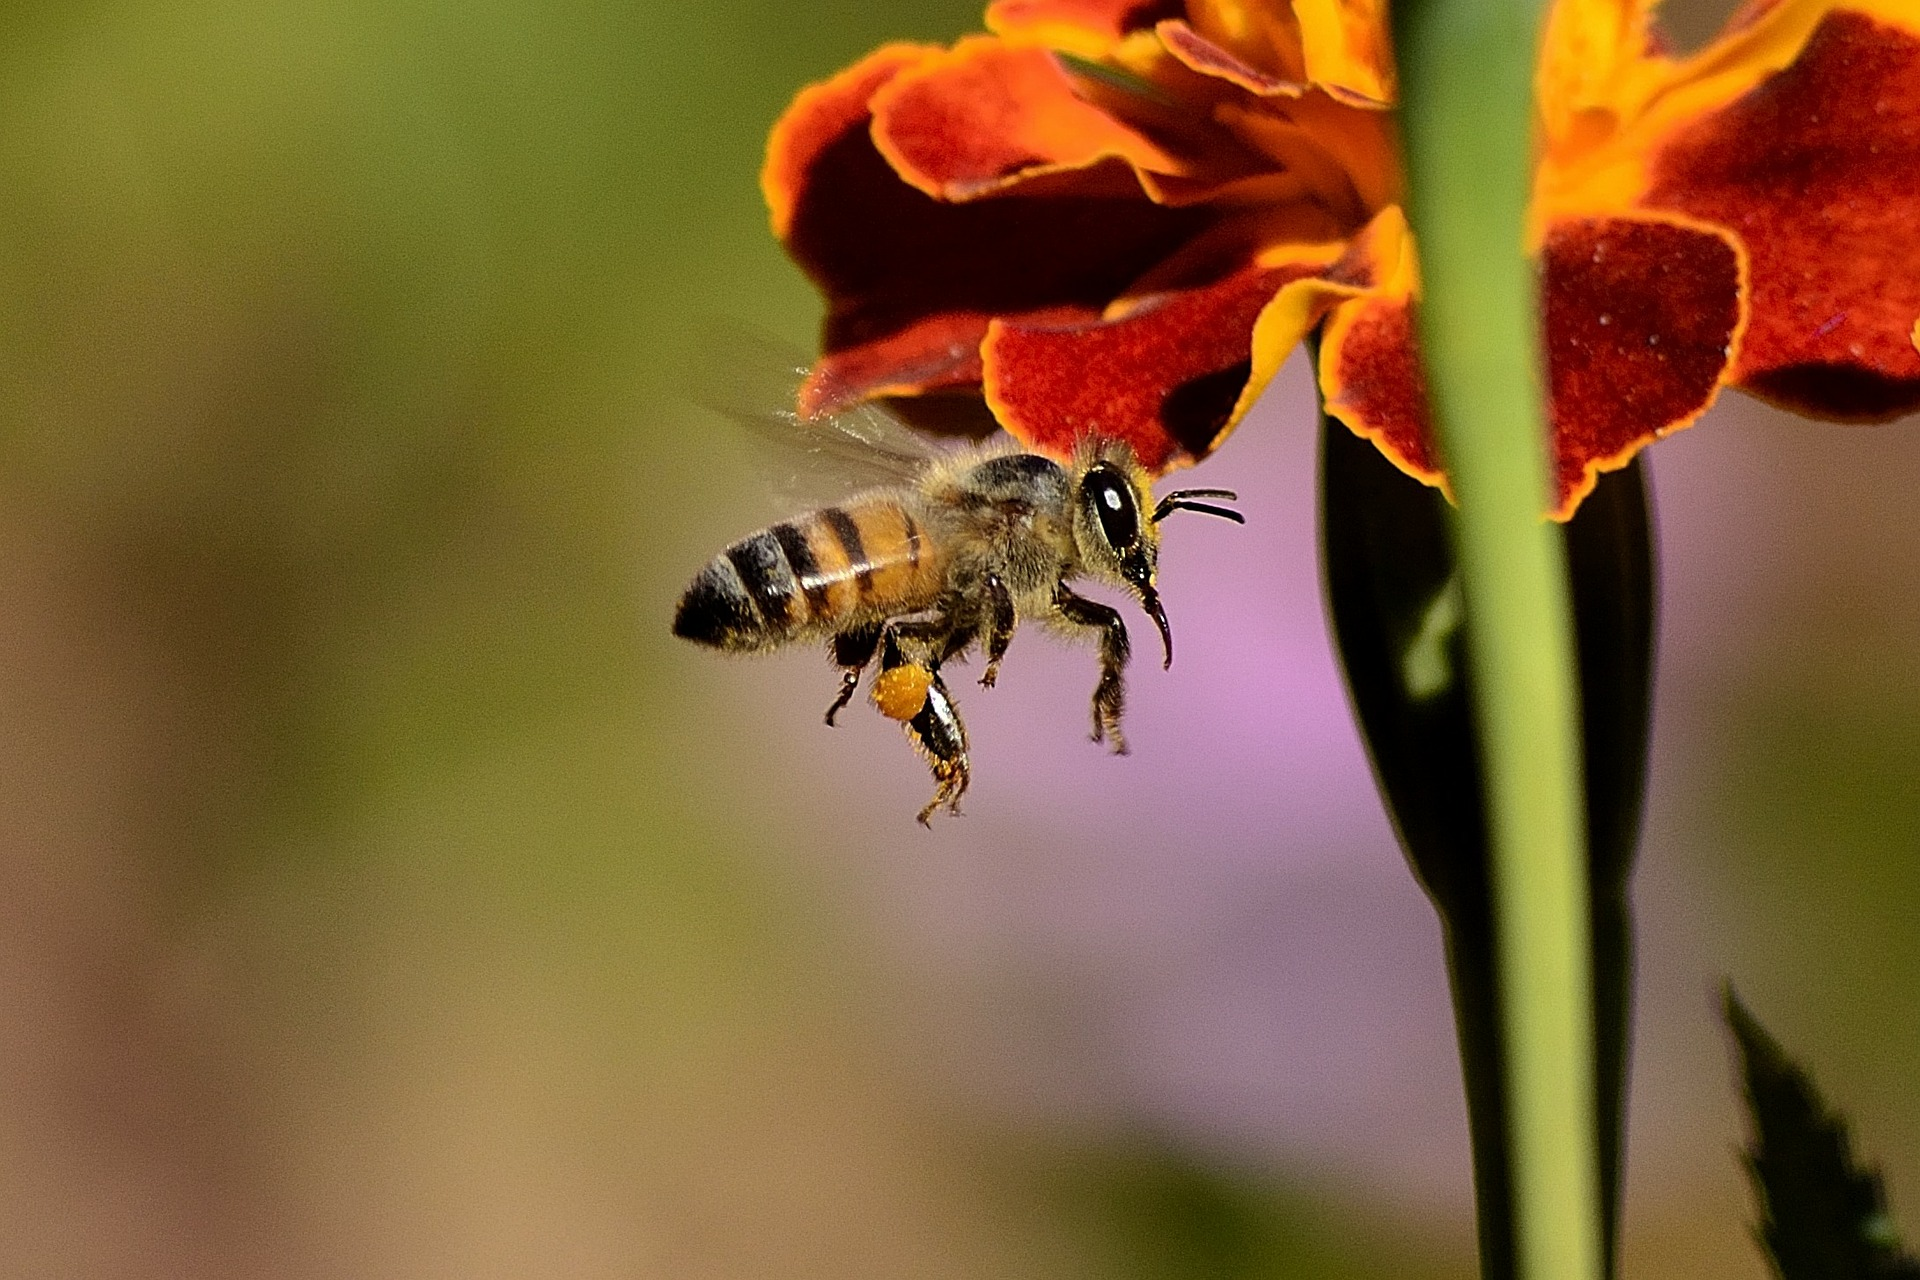 July 2021 - Adopt-A-Hive Update - Honey Bee Foraging